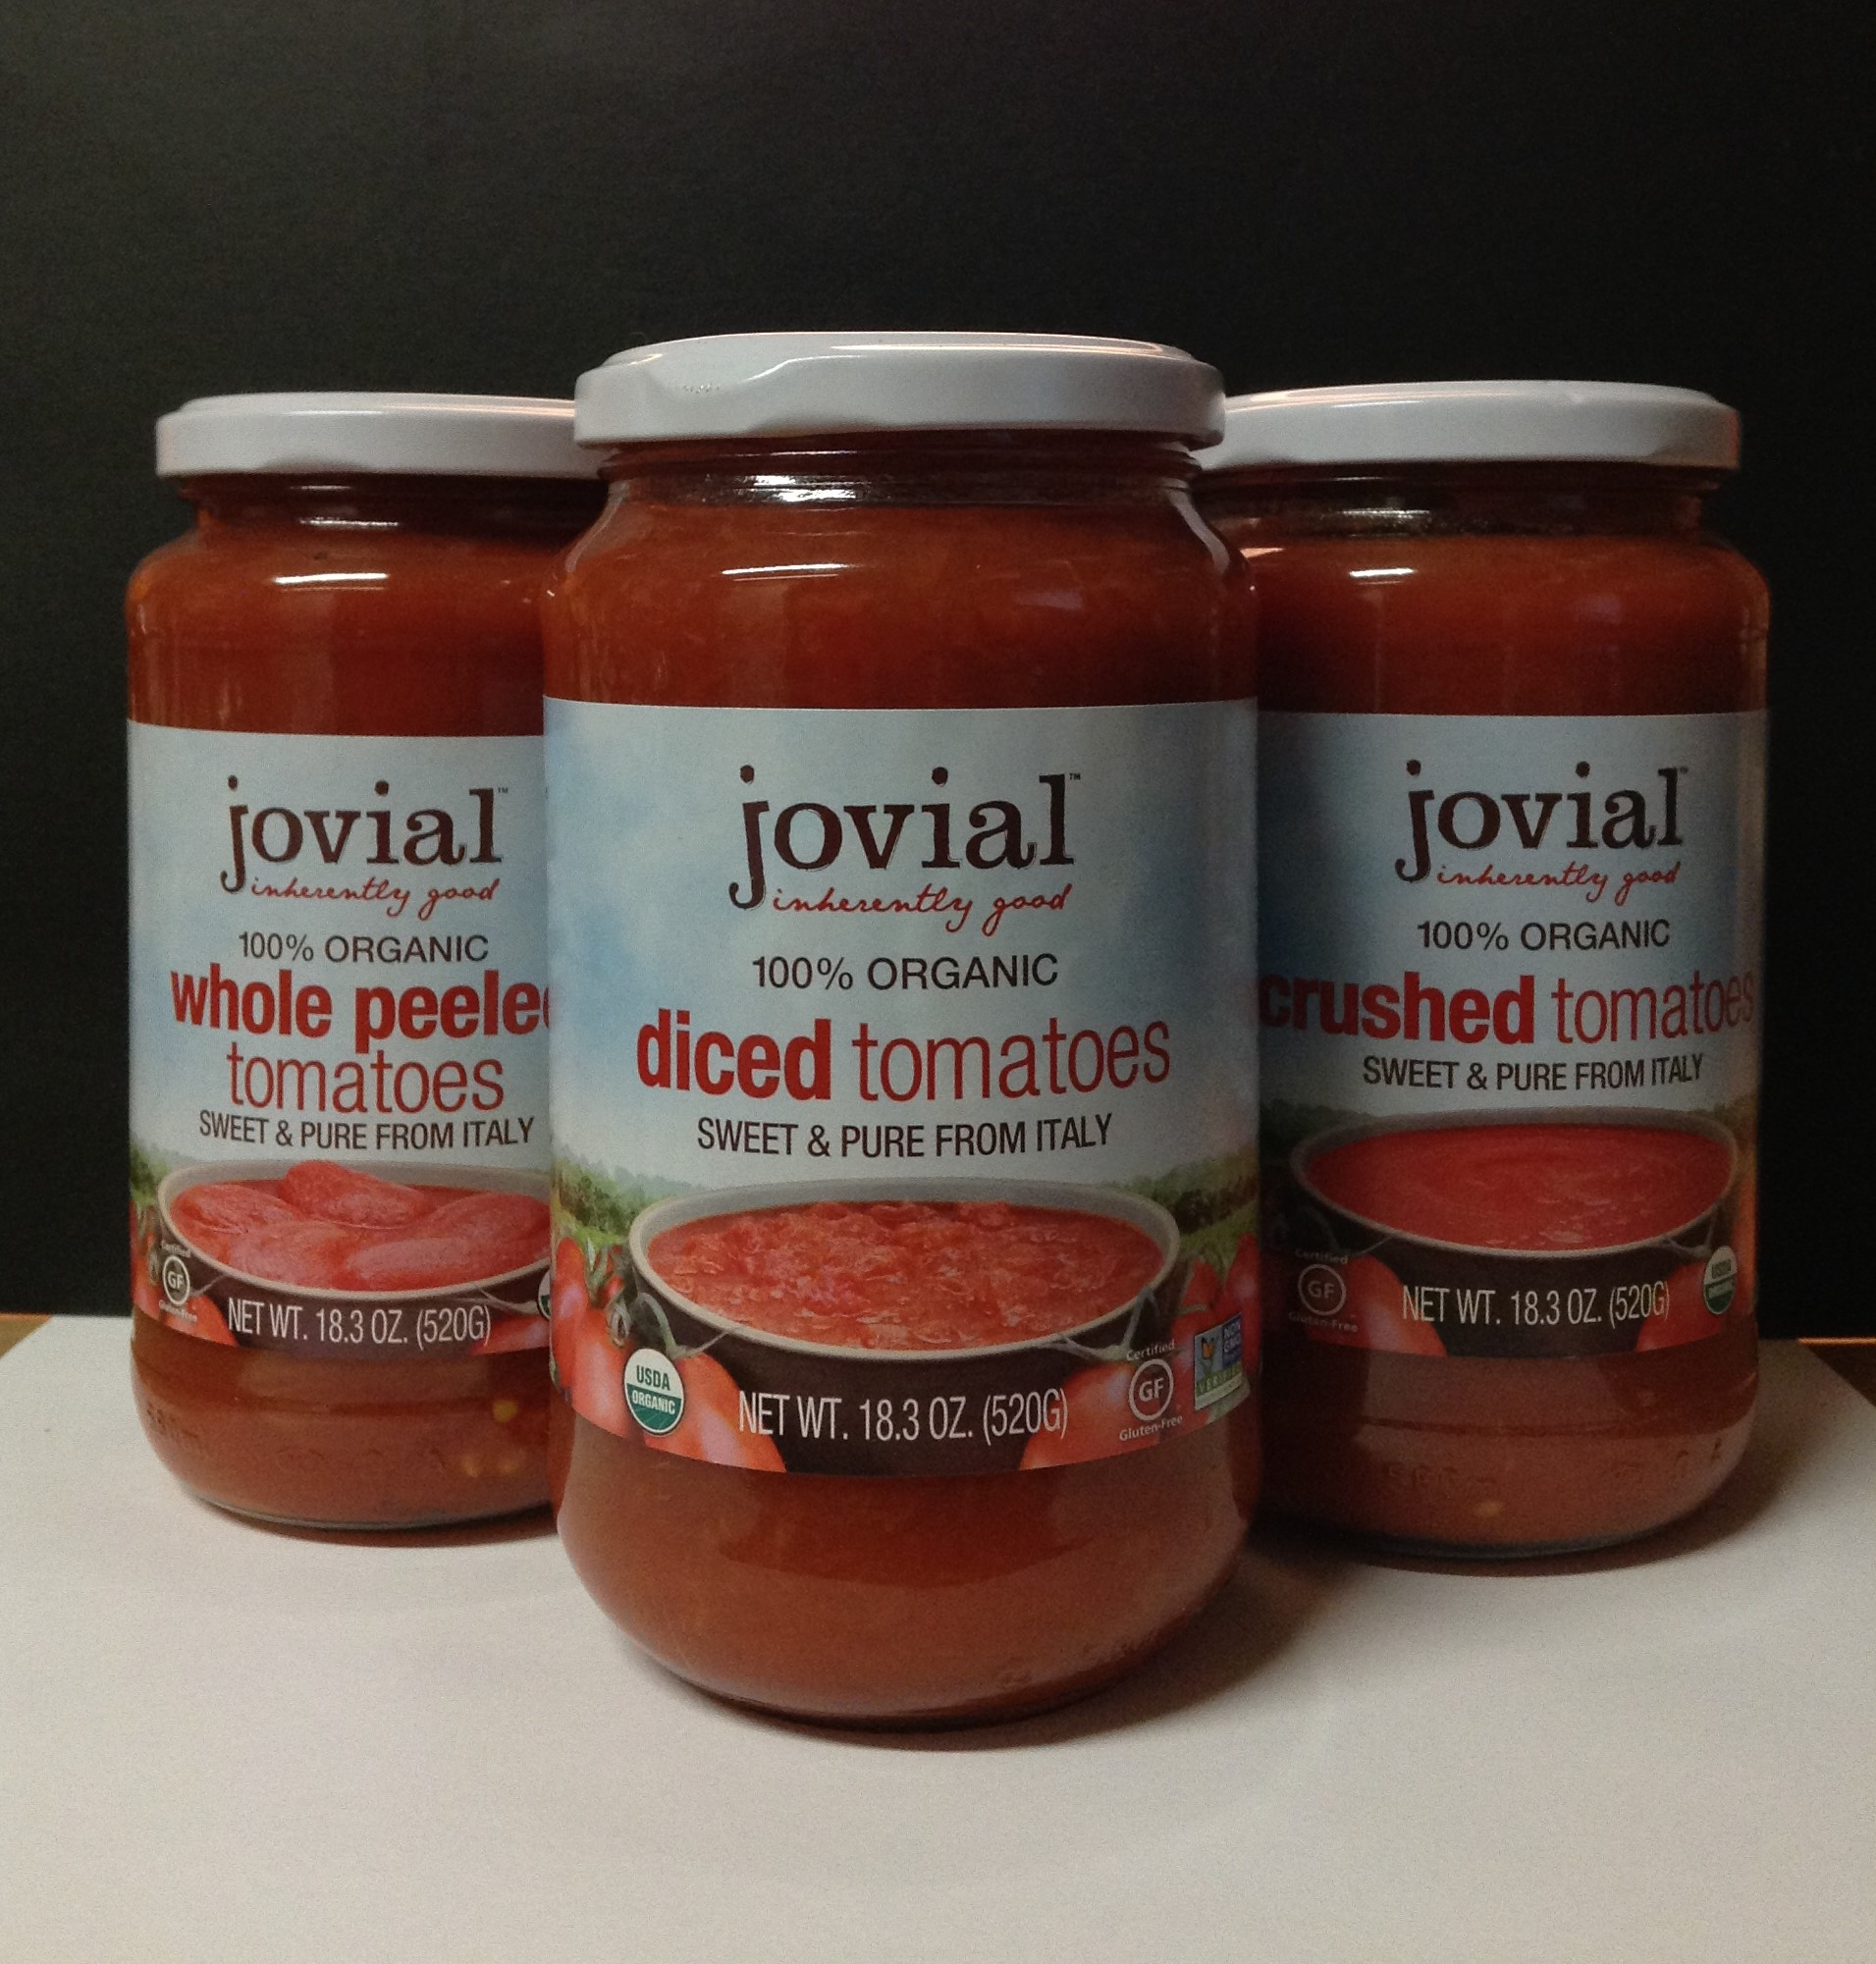 JOVIAL 100% Organic Tomato Products!